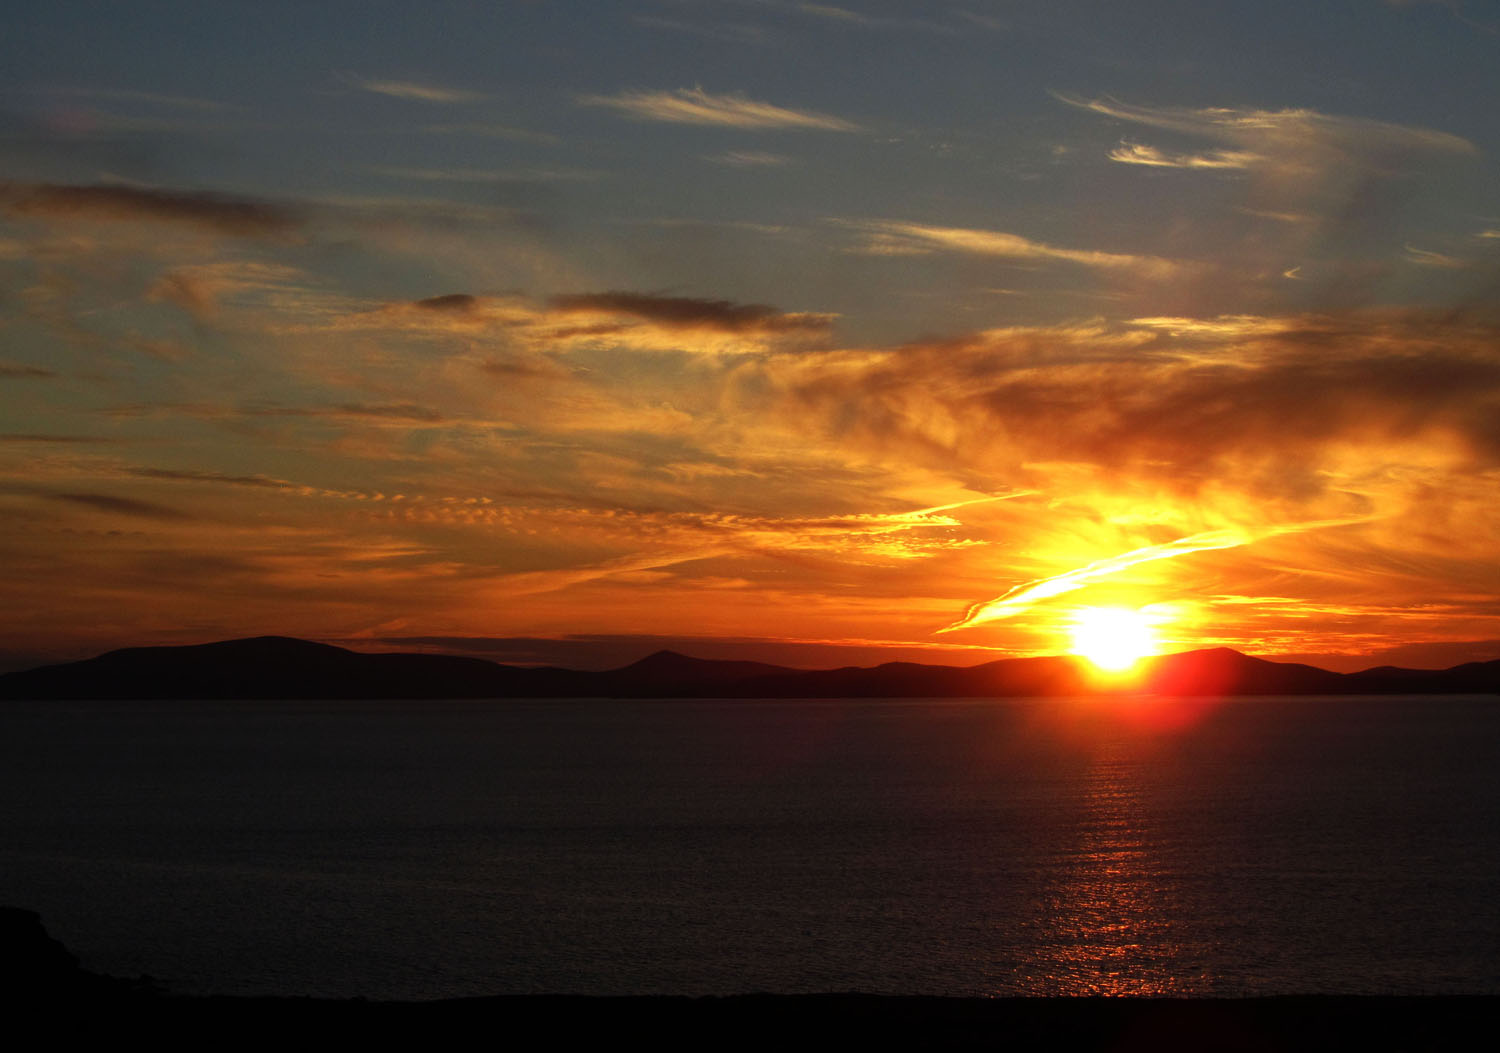 Ireland-Sights-And-Scenery-Kerry-Sunset-Dingle-Bay